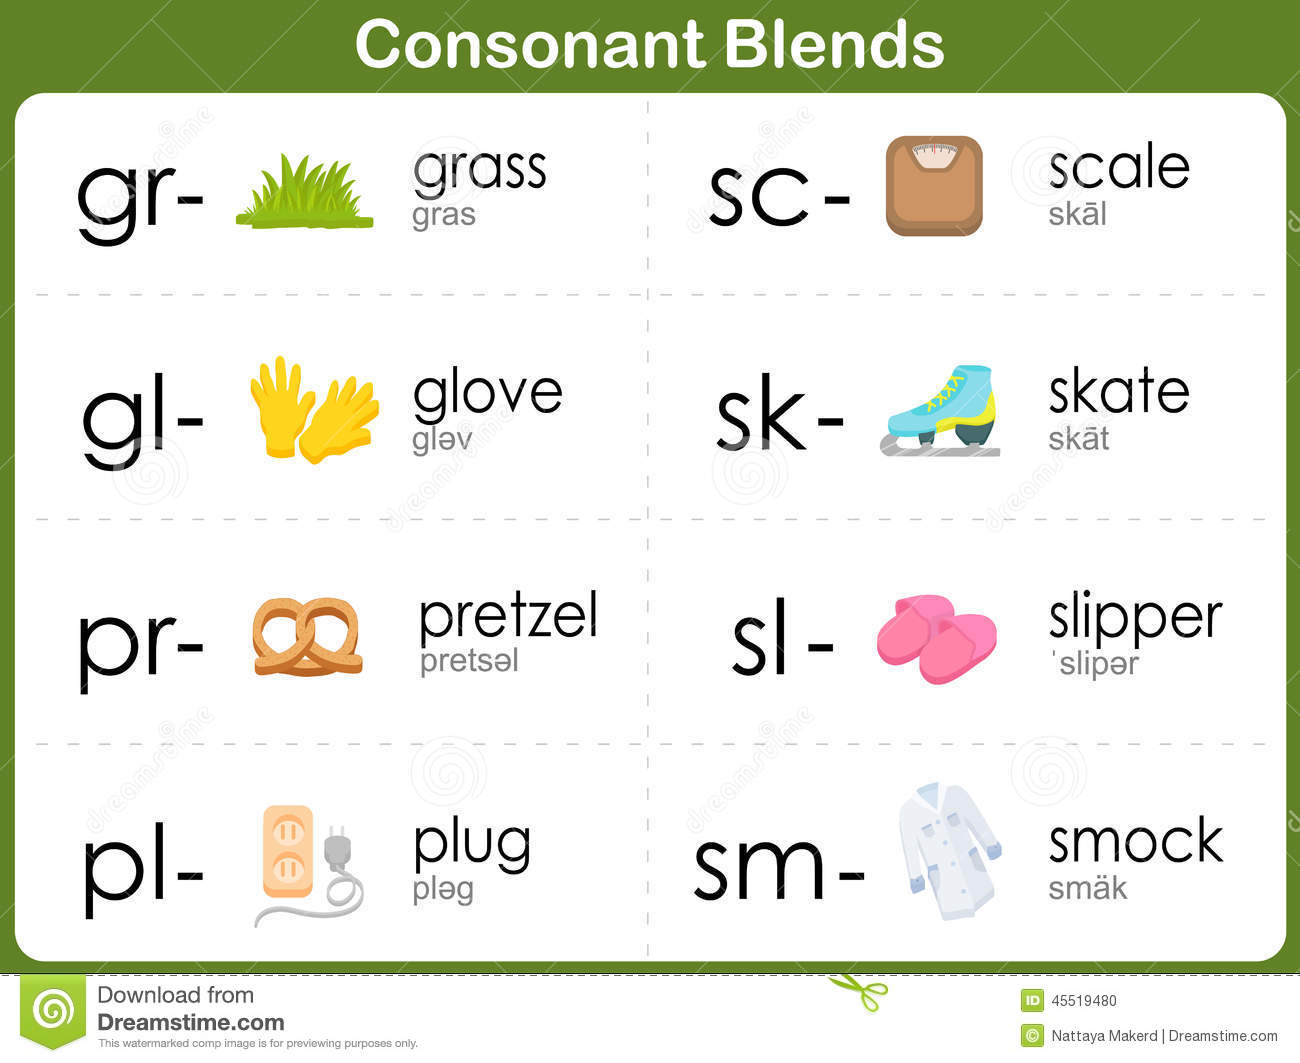 Worksheet Consonant Blends Worksheets consonant blends worksheet for kids stock vector image 45519480 kids